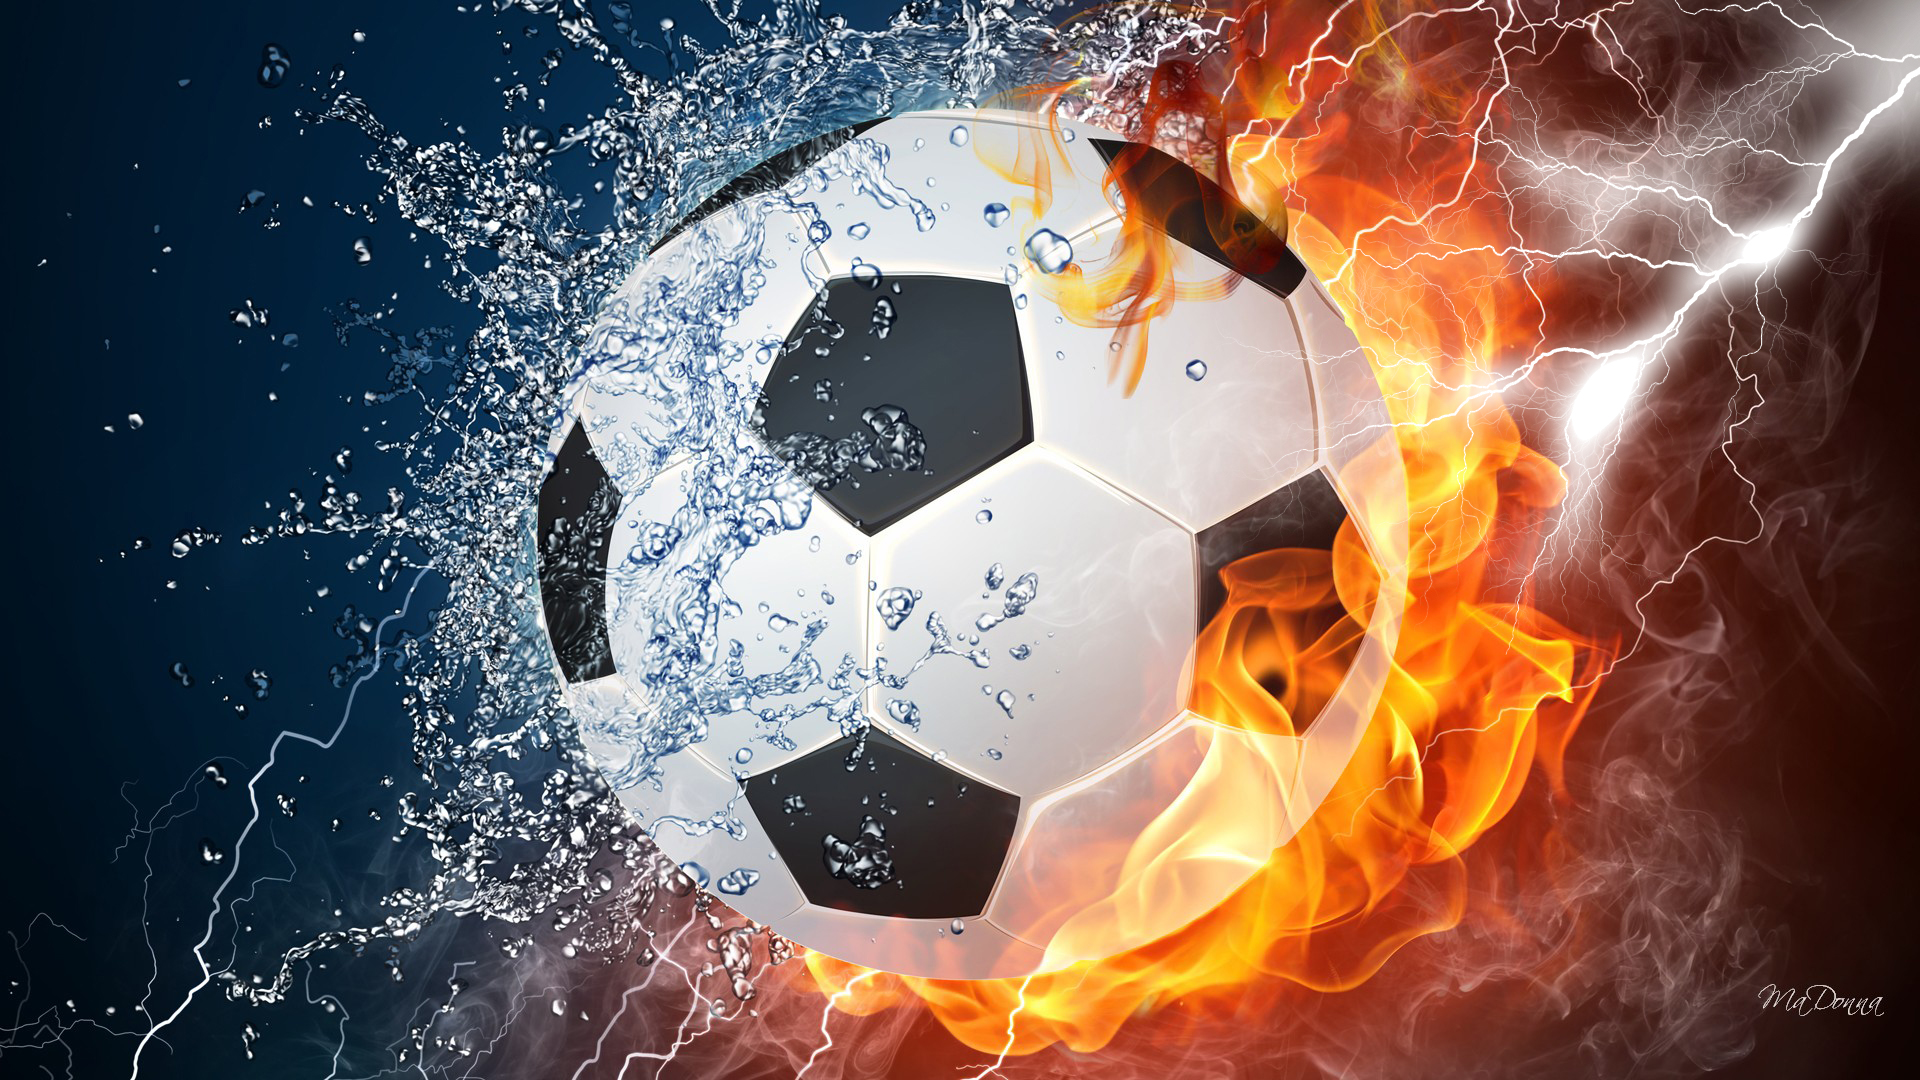 75 ] Awesome Soccer Backgrounds On WallpaperSafari